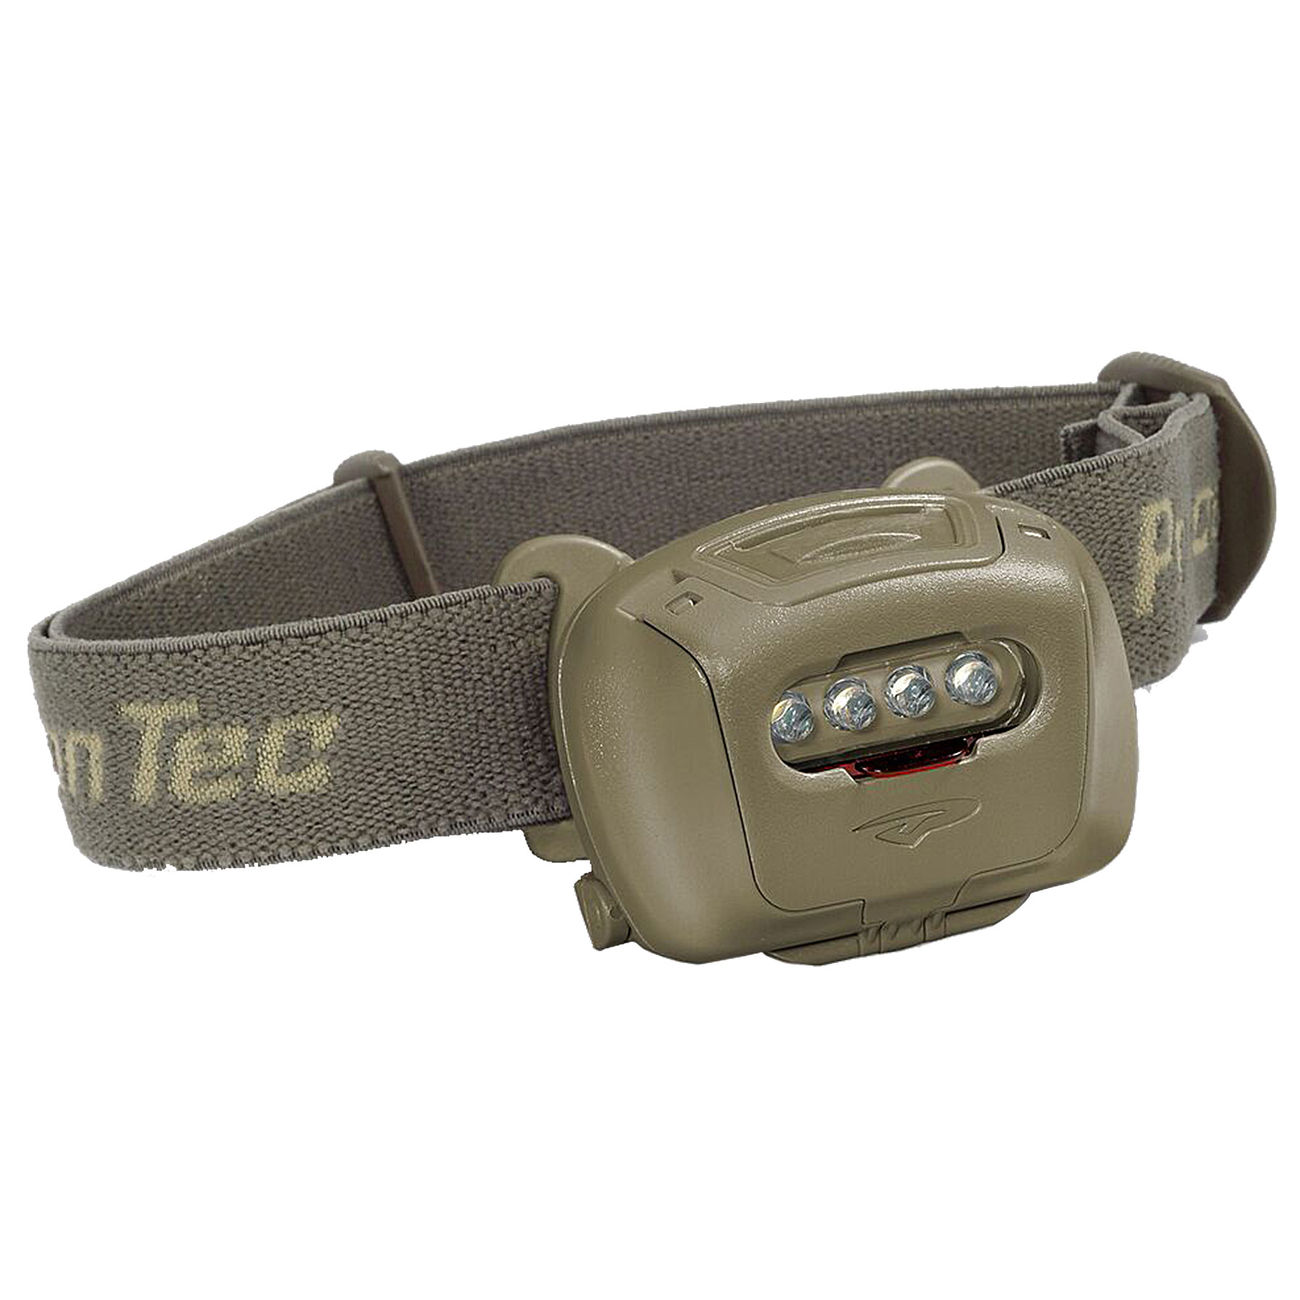 Princeton Tec LED Stirnlampe Tactical Quad oliv 0